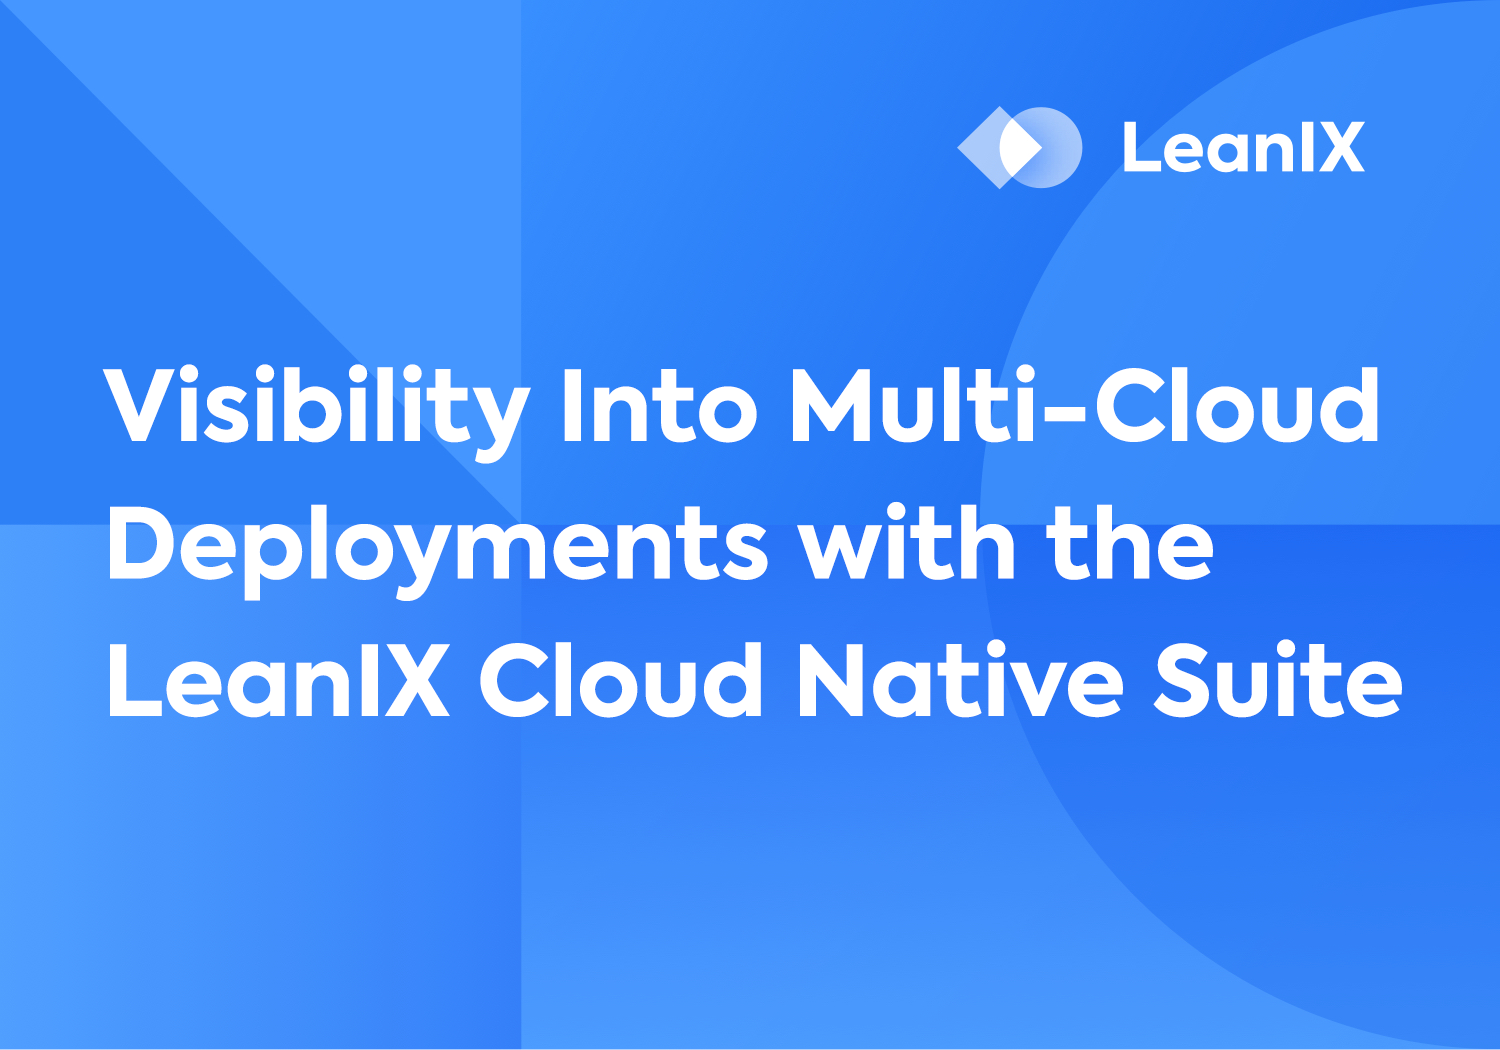 Presentation: Visibility Into Multi-Cloud Deployments with the LeanIX Cloud Native Suite